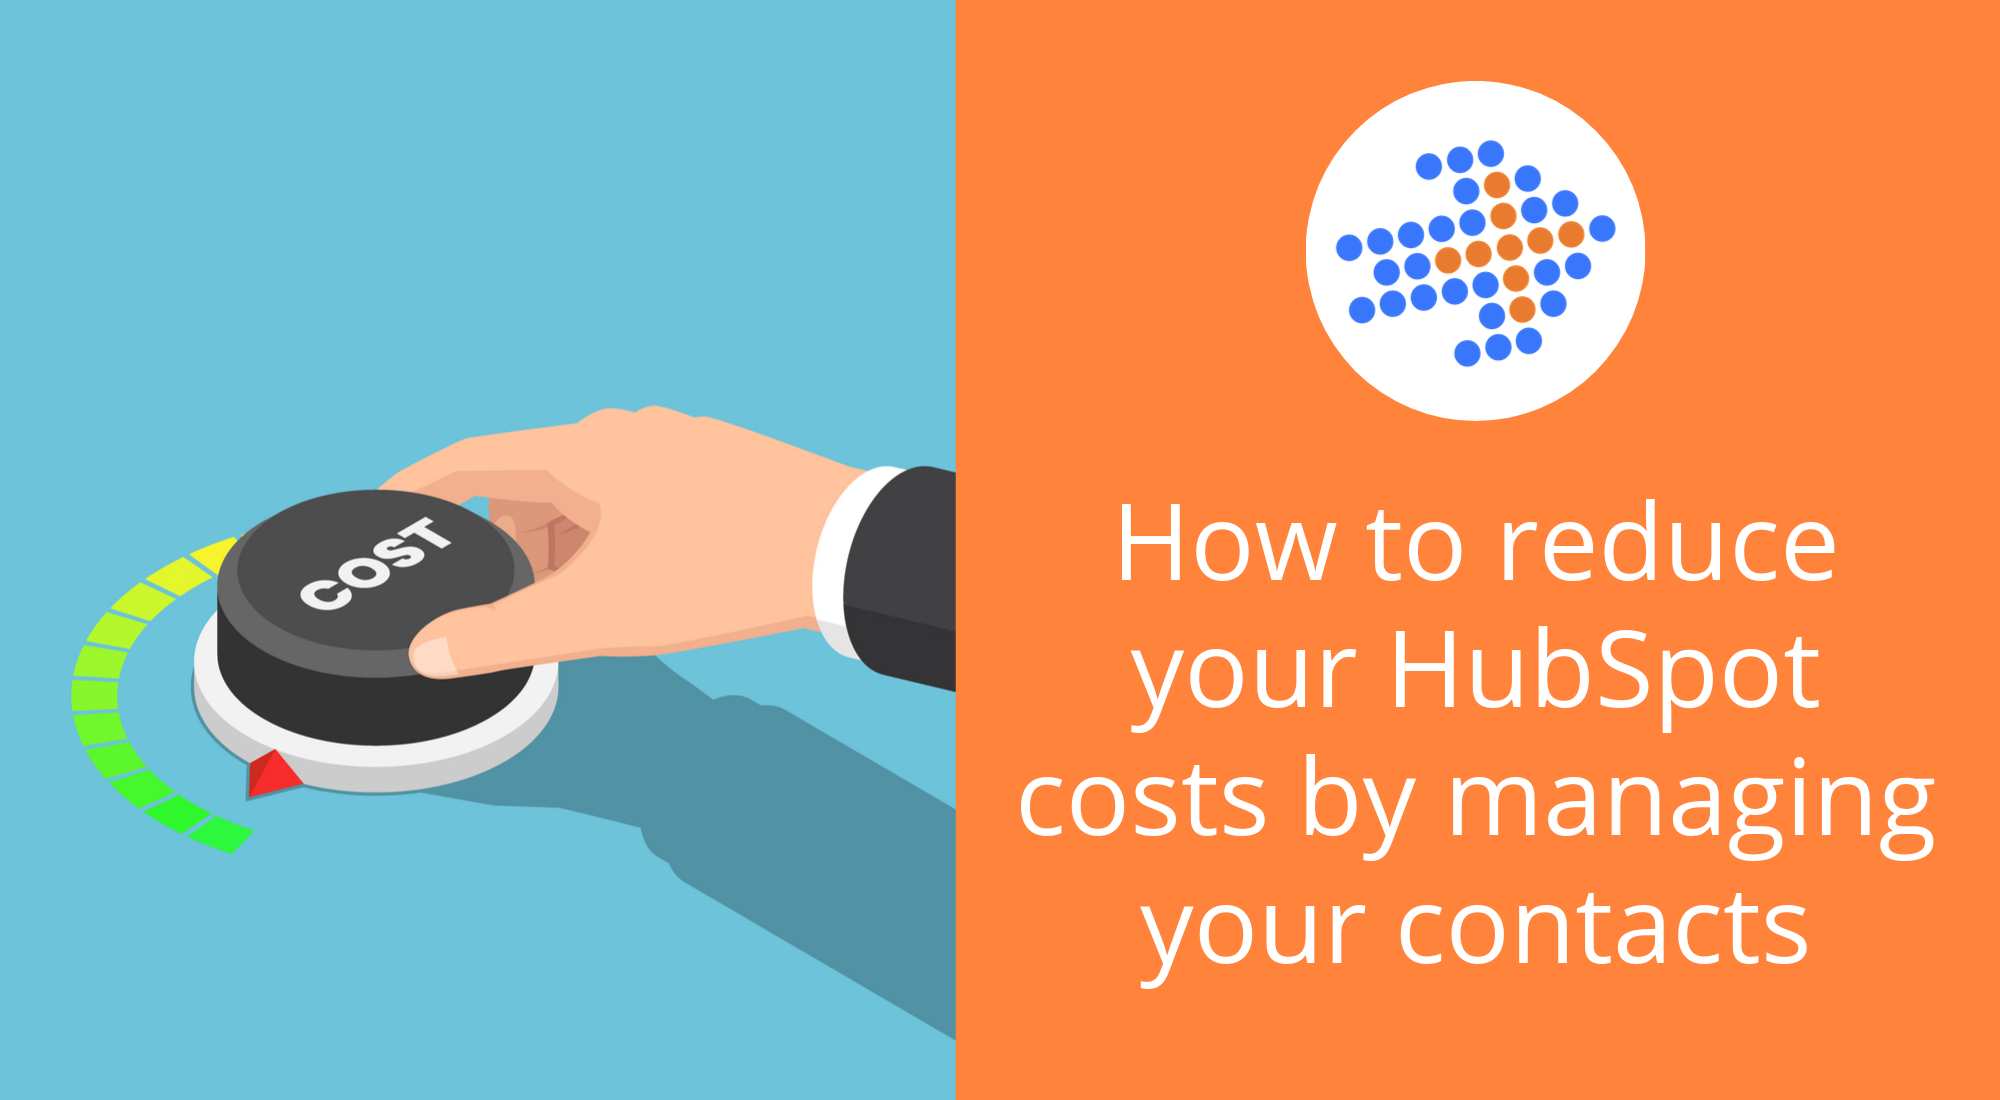 How to reduce your HubSpot costs by managing your contacts